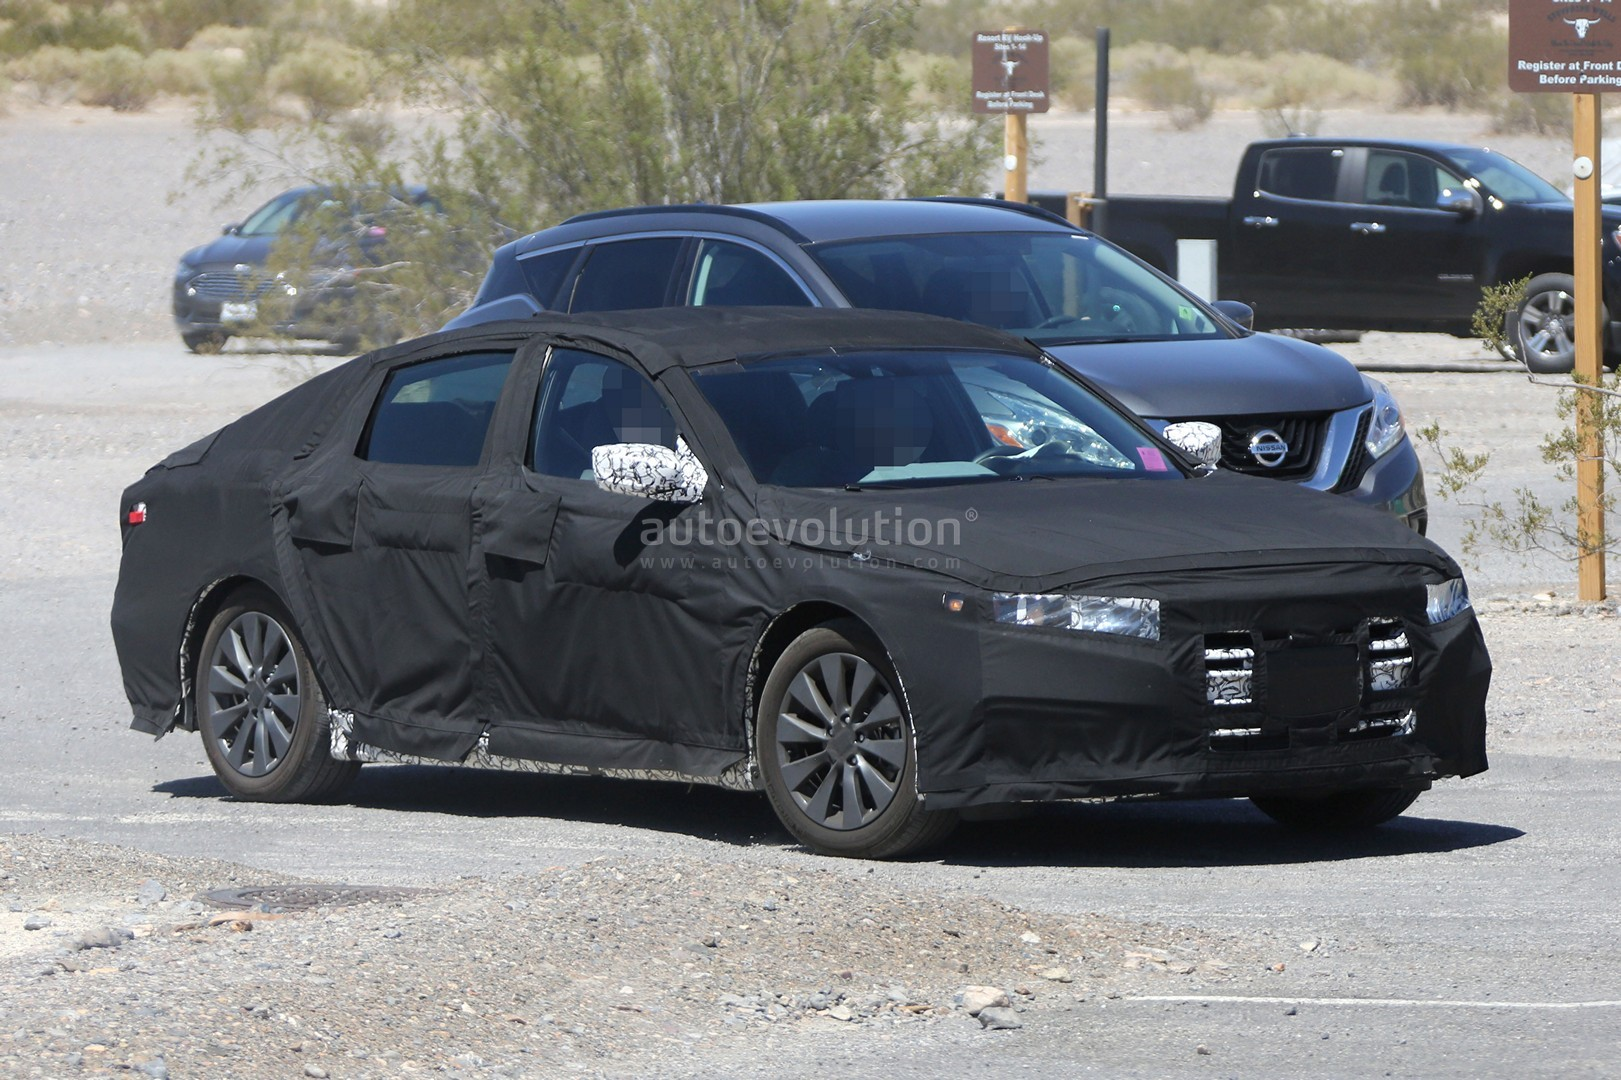 2018 Honda Accord Spied For The First Time Partially Reveals C5 Corvette Passenger Fuse Diagram Interior